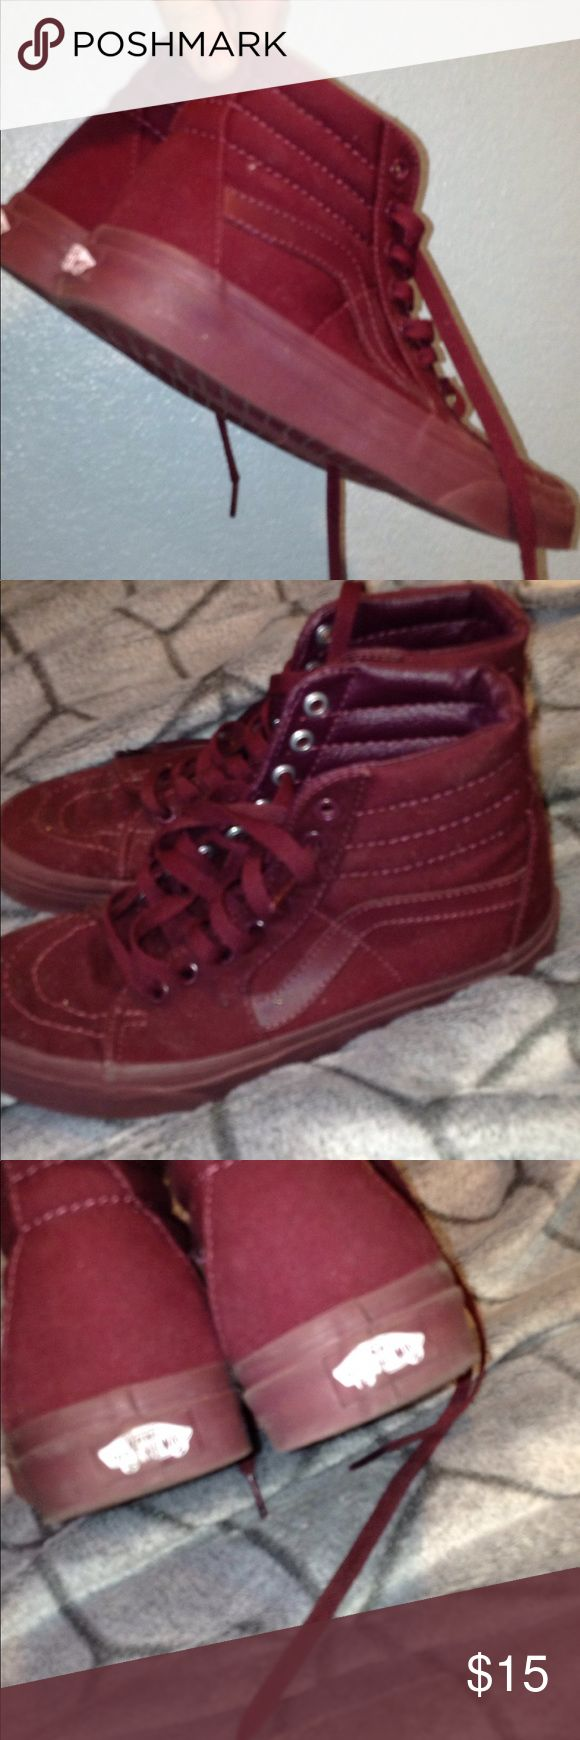 Burgundy vans! Burgundy high top vans! In the size 7! I am able to negotiate! Vans Shoes Sneakers